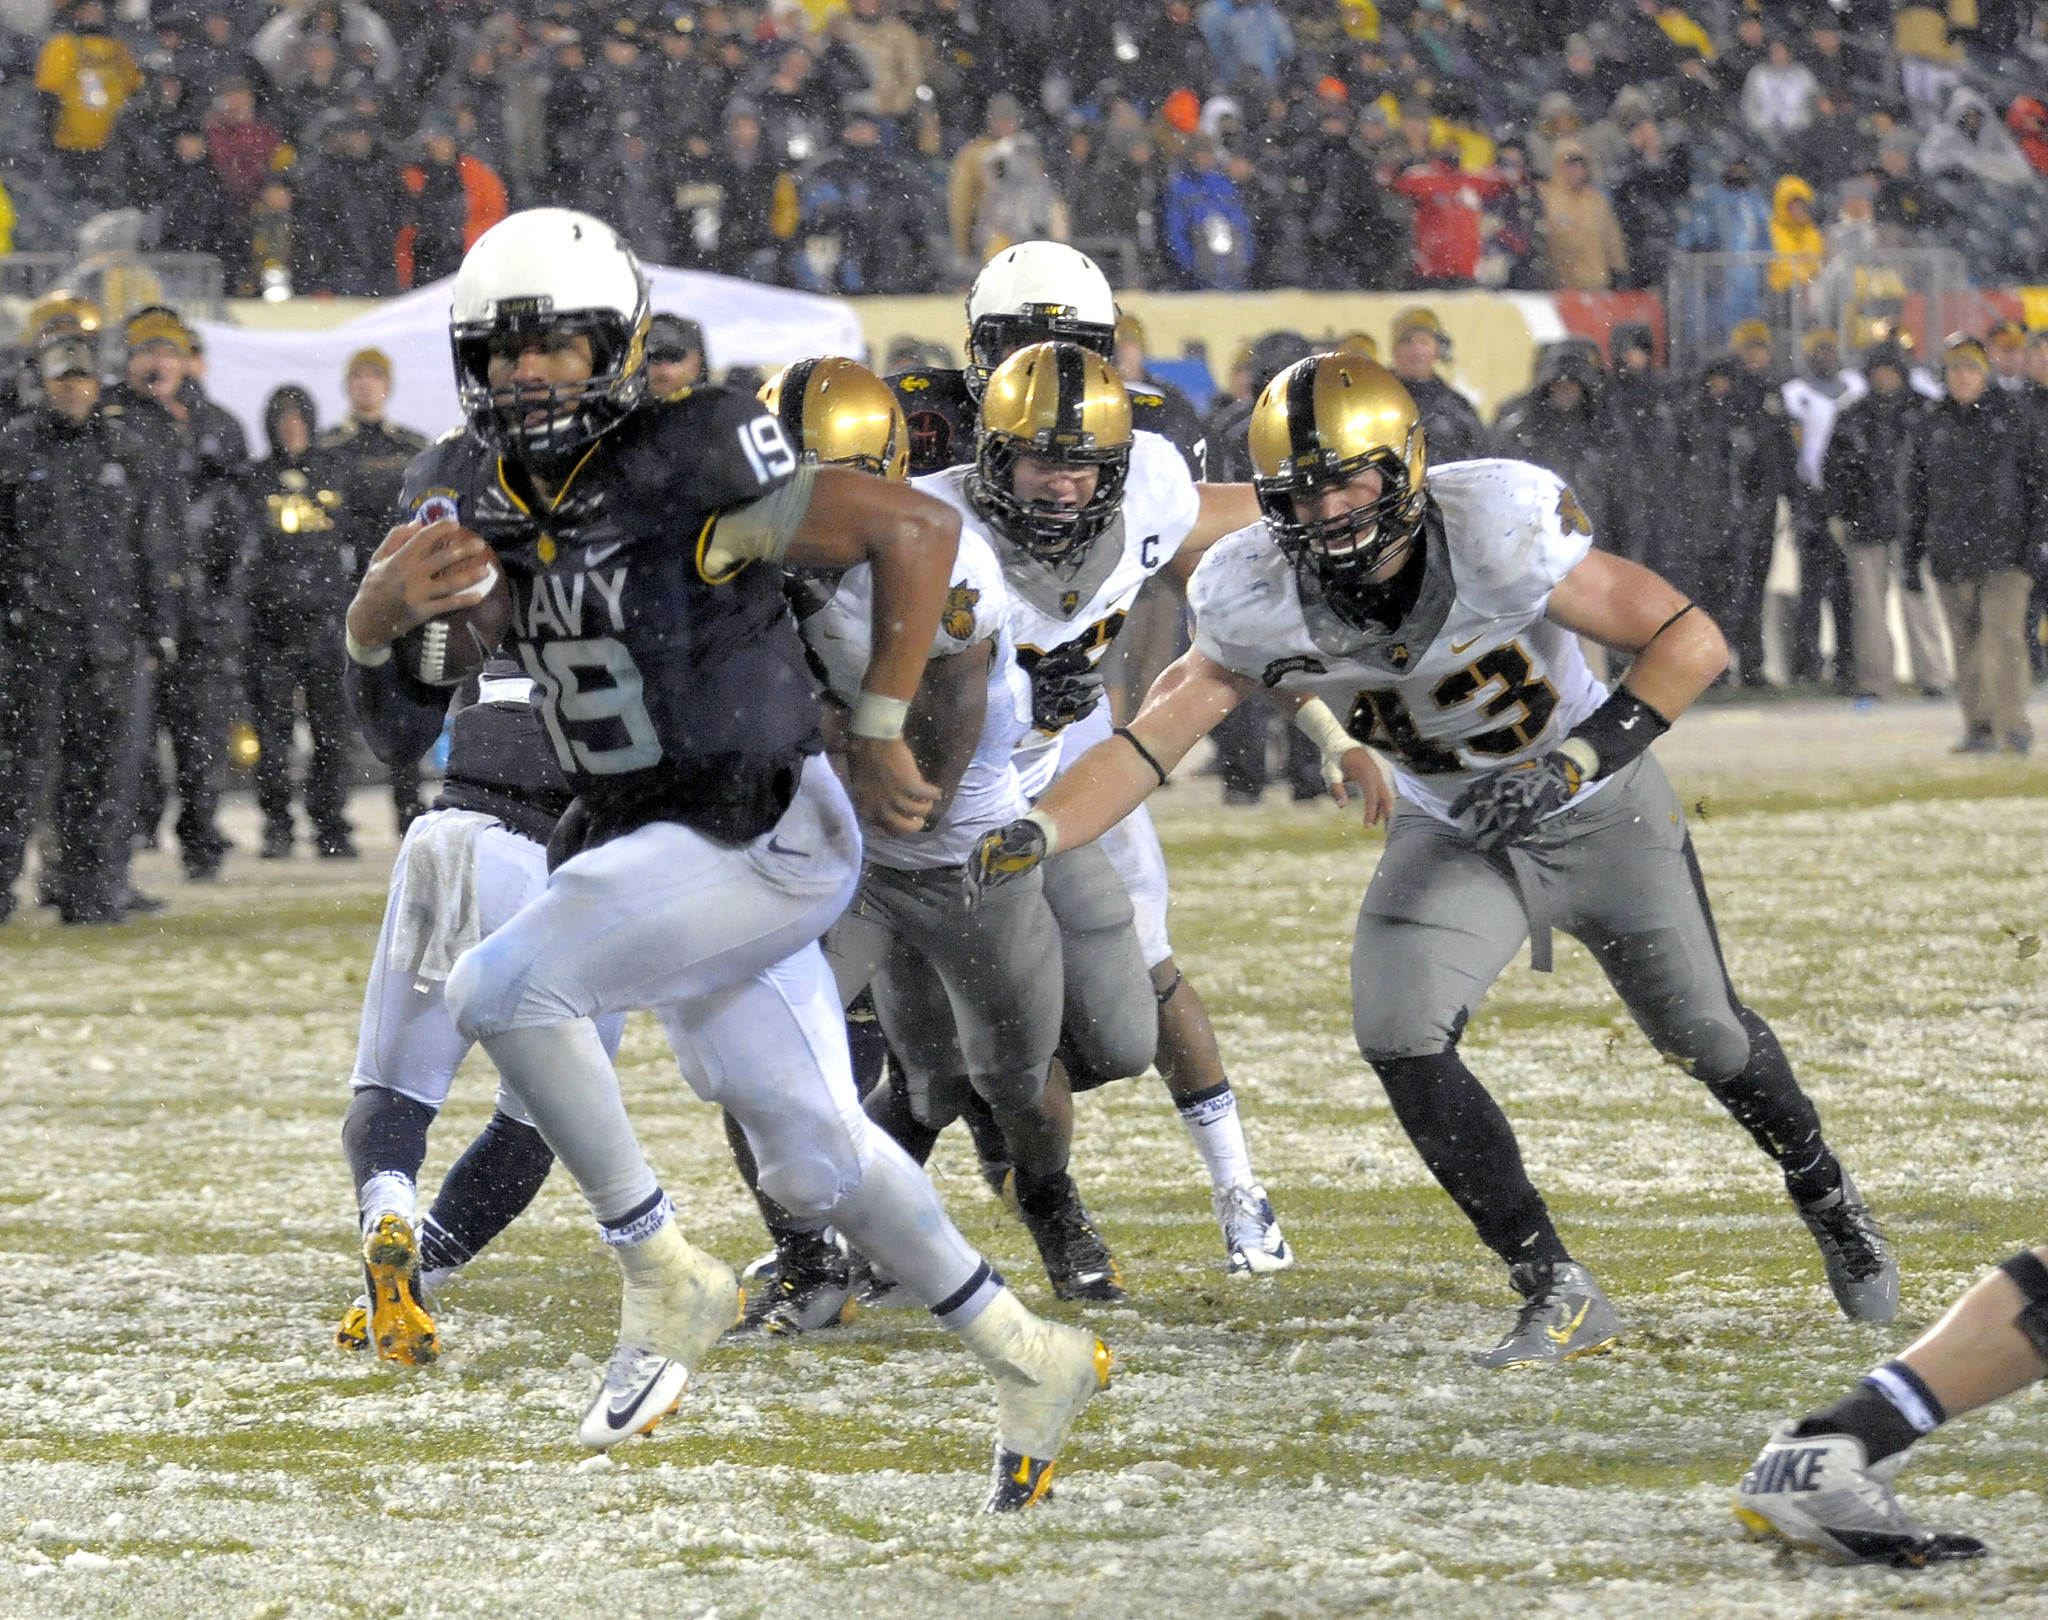 114th Army Navy Football Game Pictures Baltimore Sun